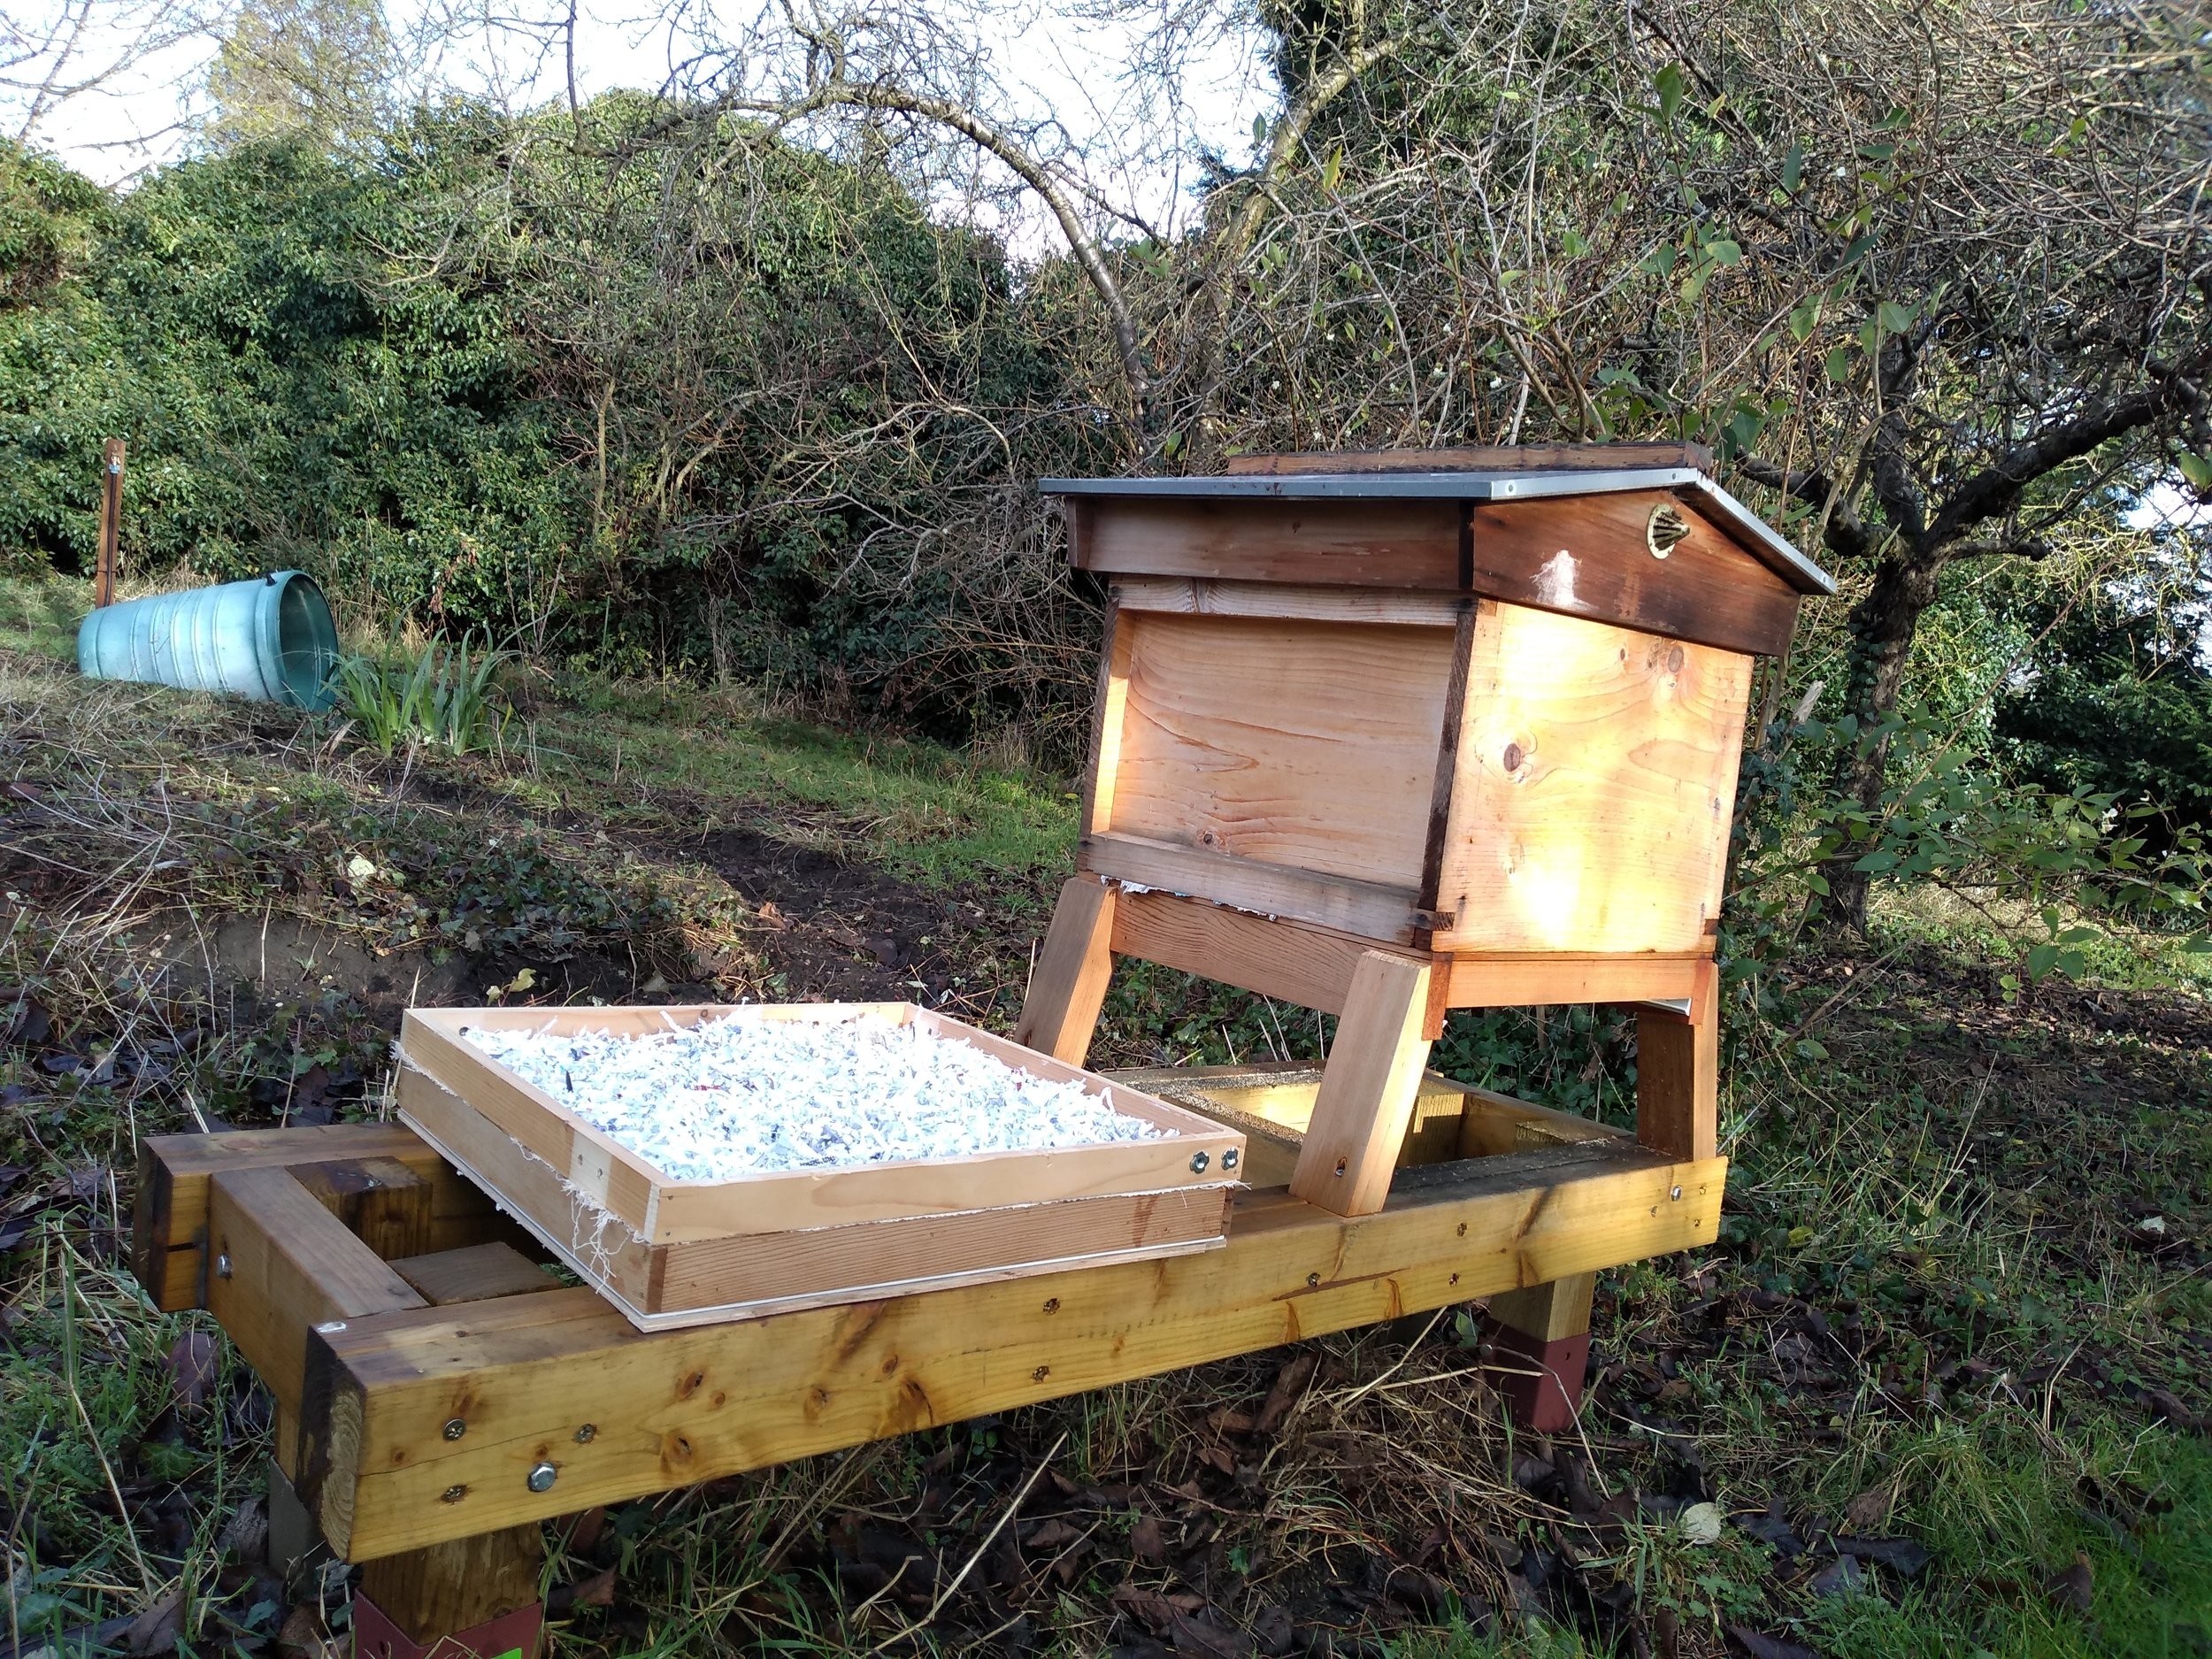 Stacked sugar board and dry board waiting to be added to Queen Romaine's hive.